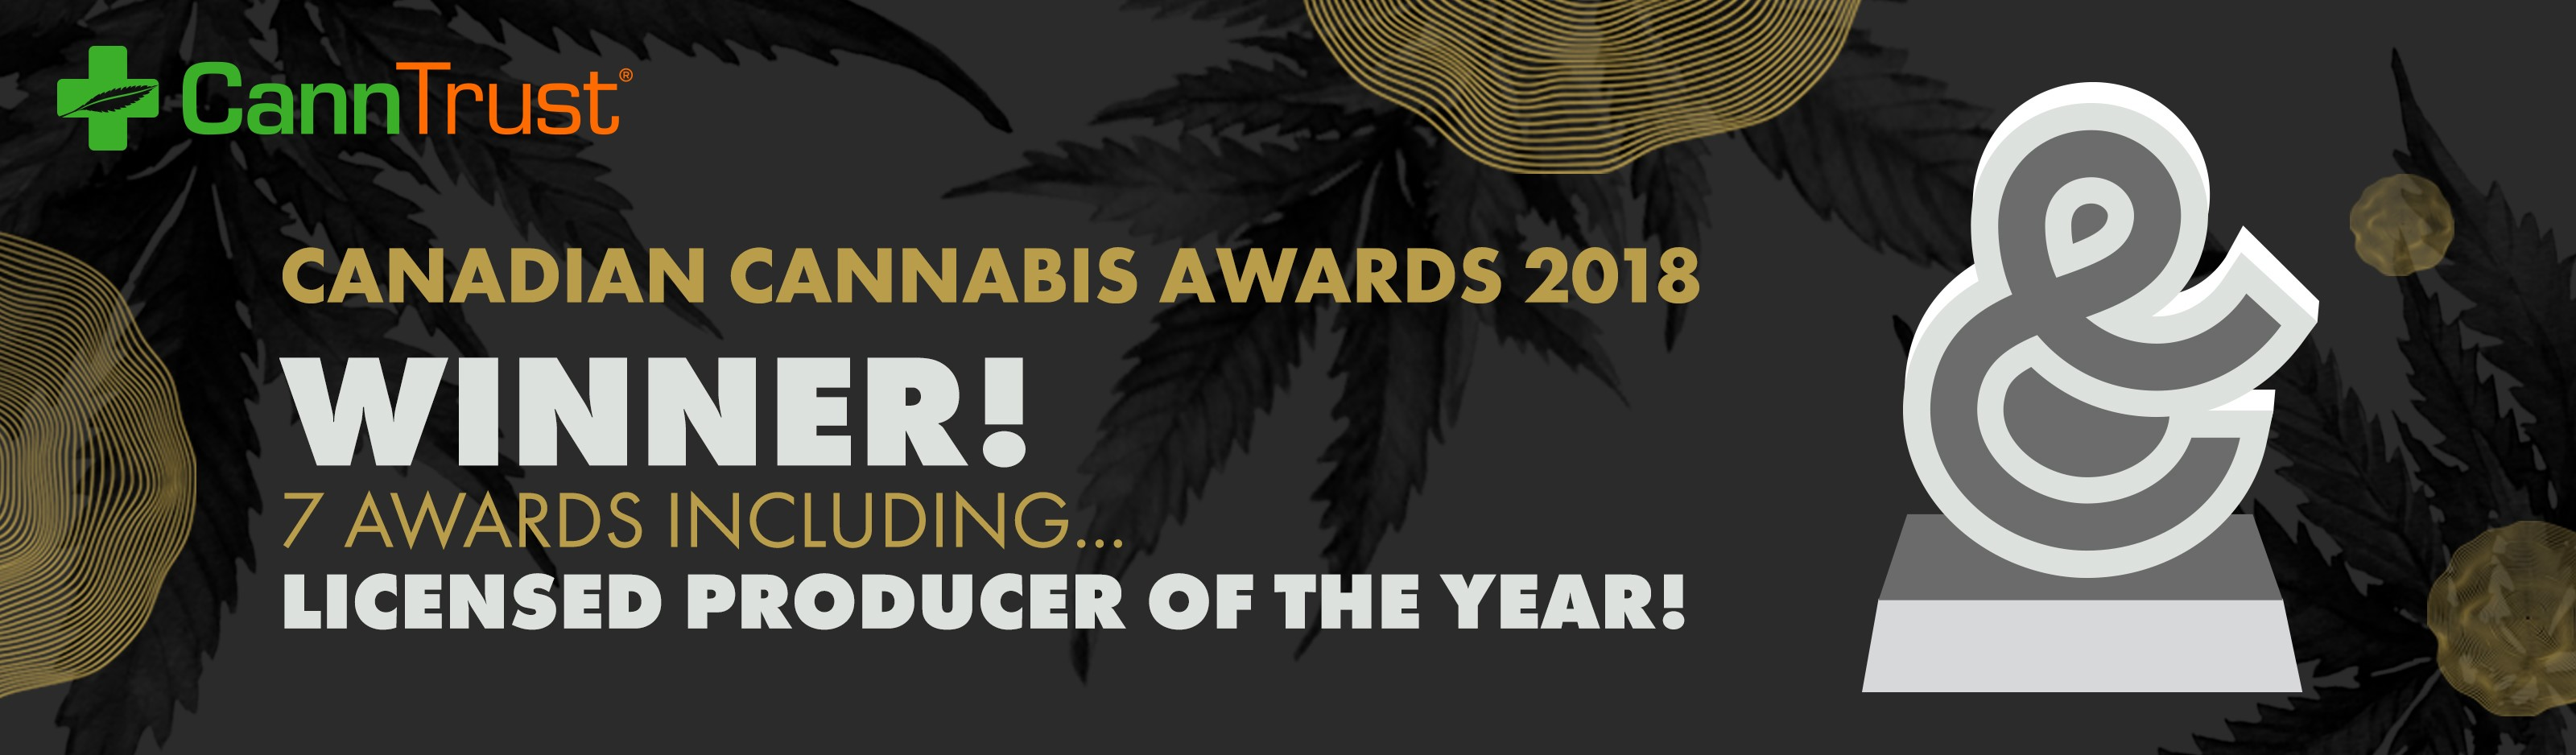 CannTrust Dominates 2018 Canadian Cannabis Awards